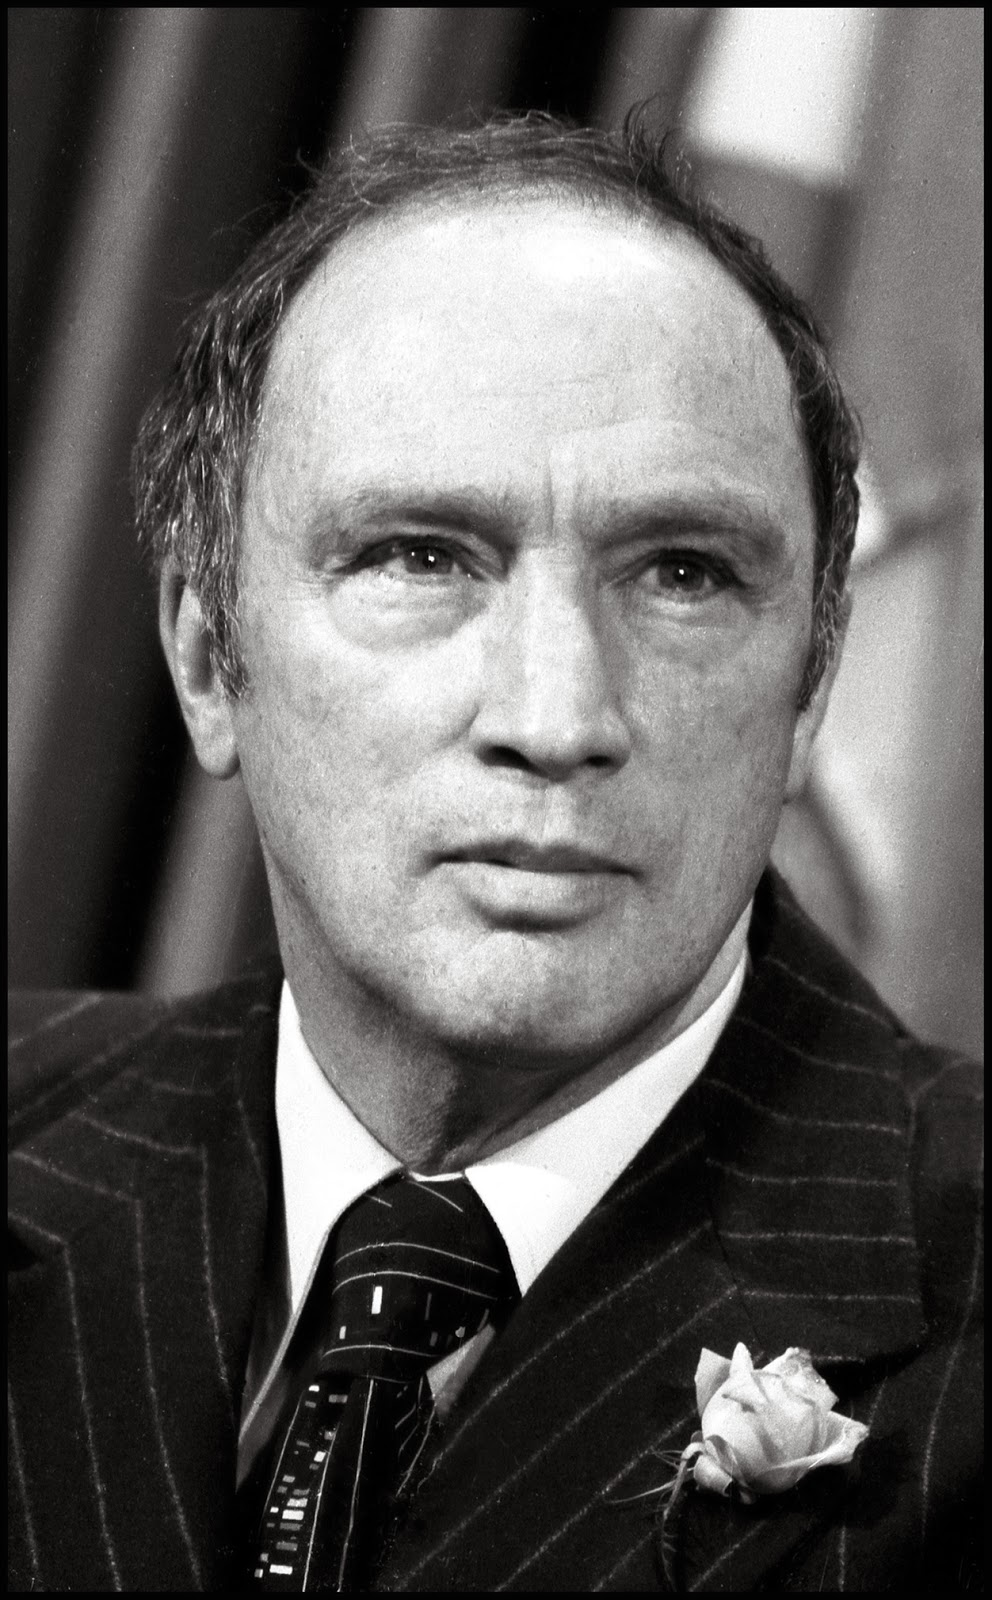 essays on pierre elliott trudeau Pierre trudeau pierre trudeau pierre elliott trudeau: reason before sign up to view the whole essay and download the pdf for anytime access on your.